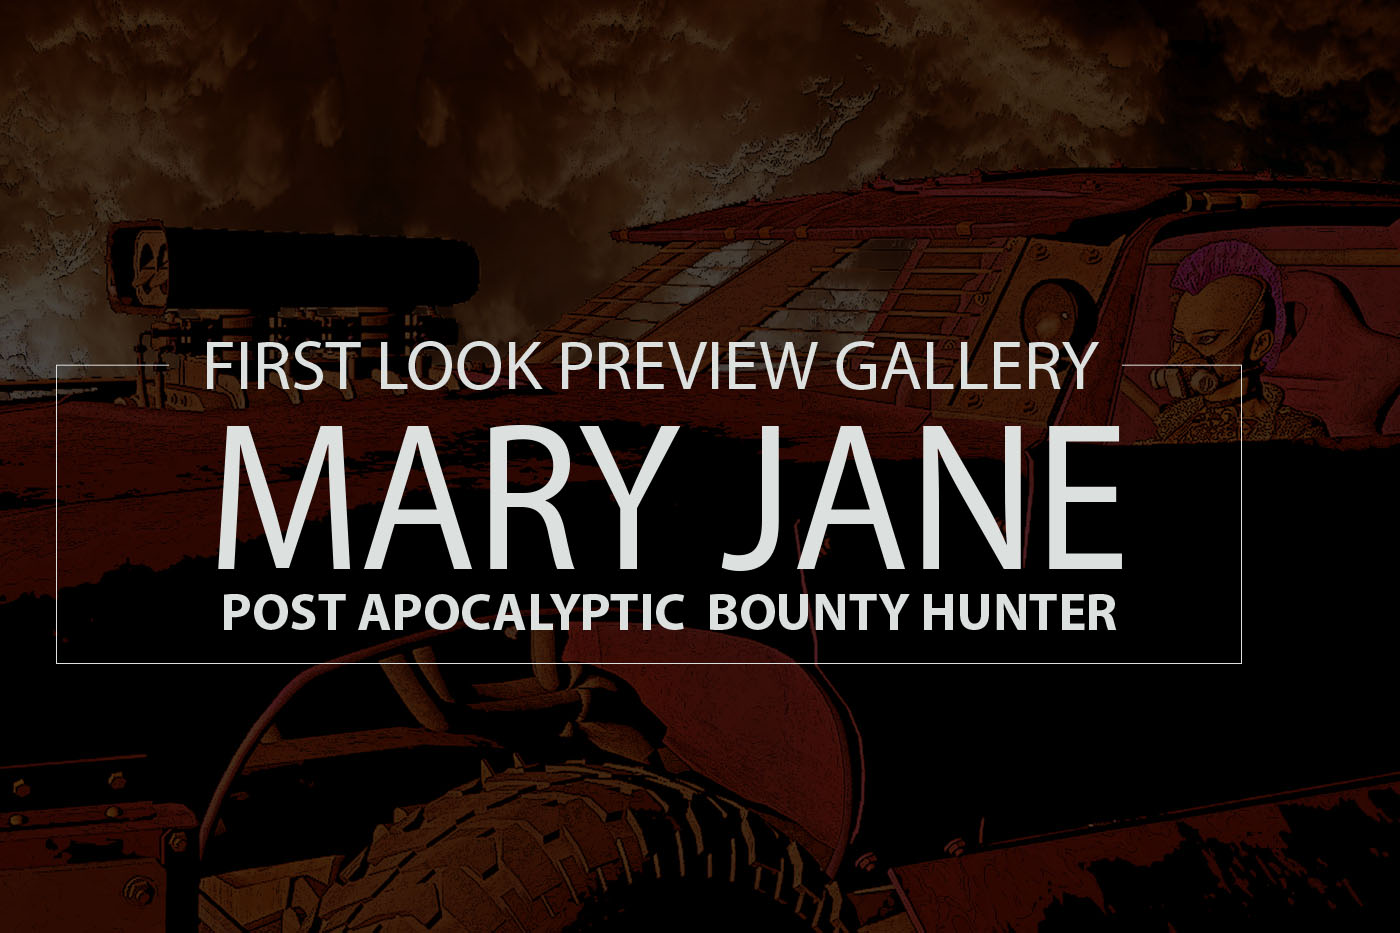 First Look The Chronicles of Mary Jane: Post Apocalyptic Bounty Hunter